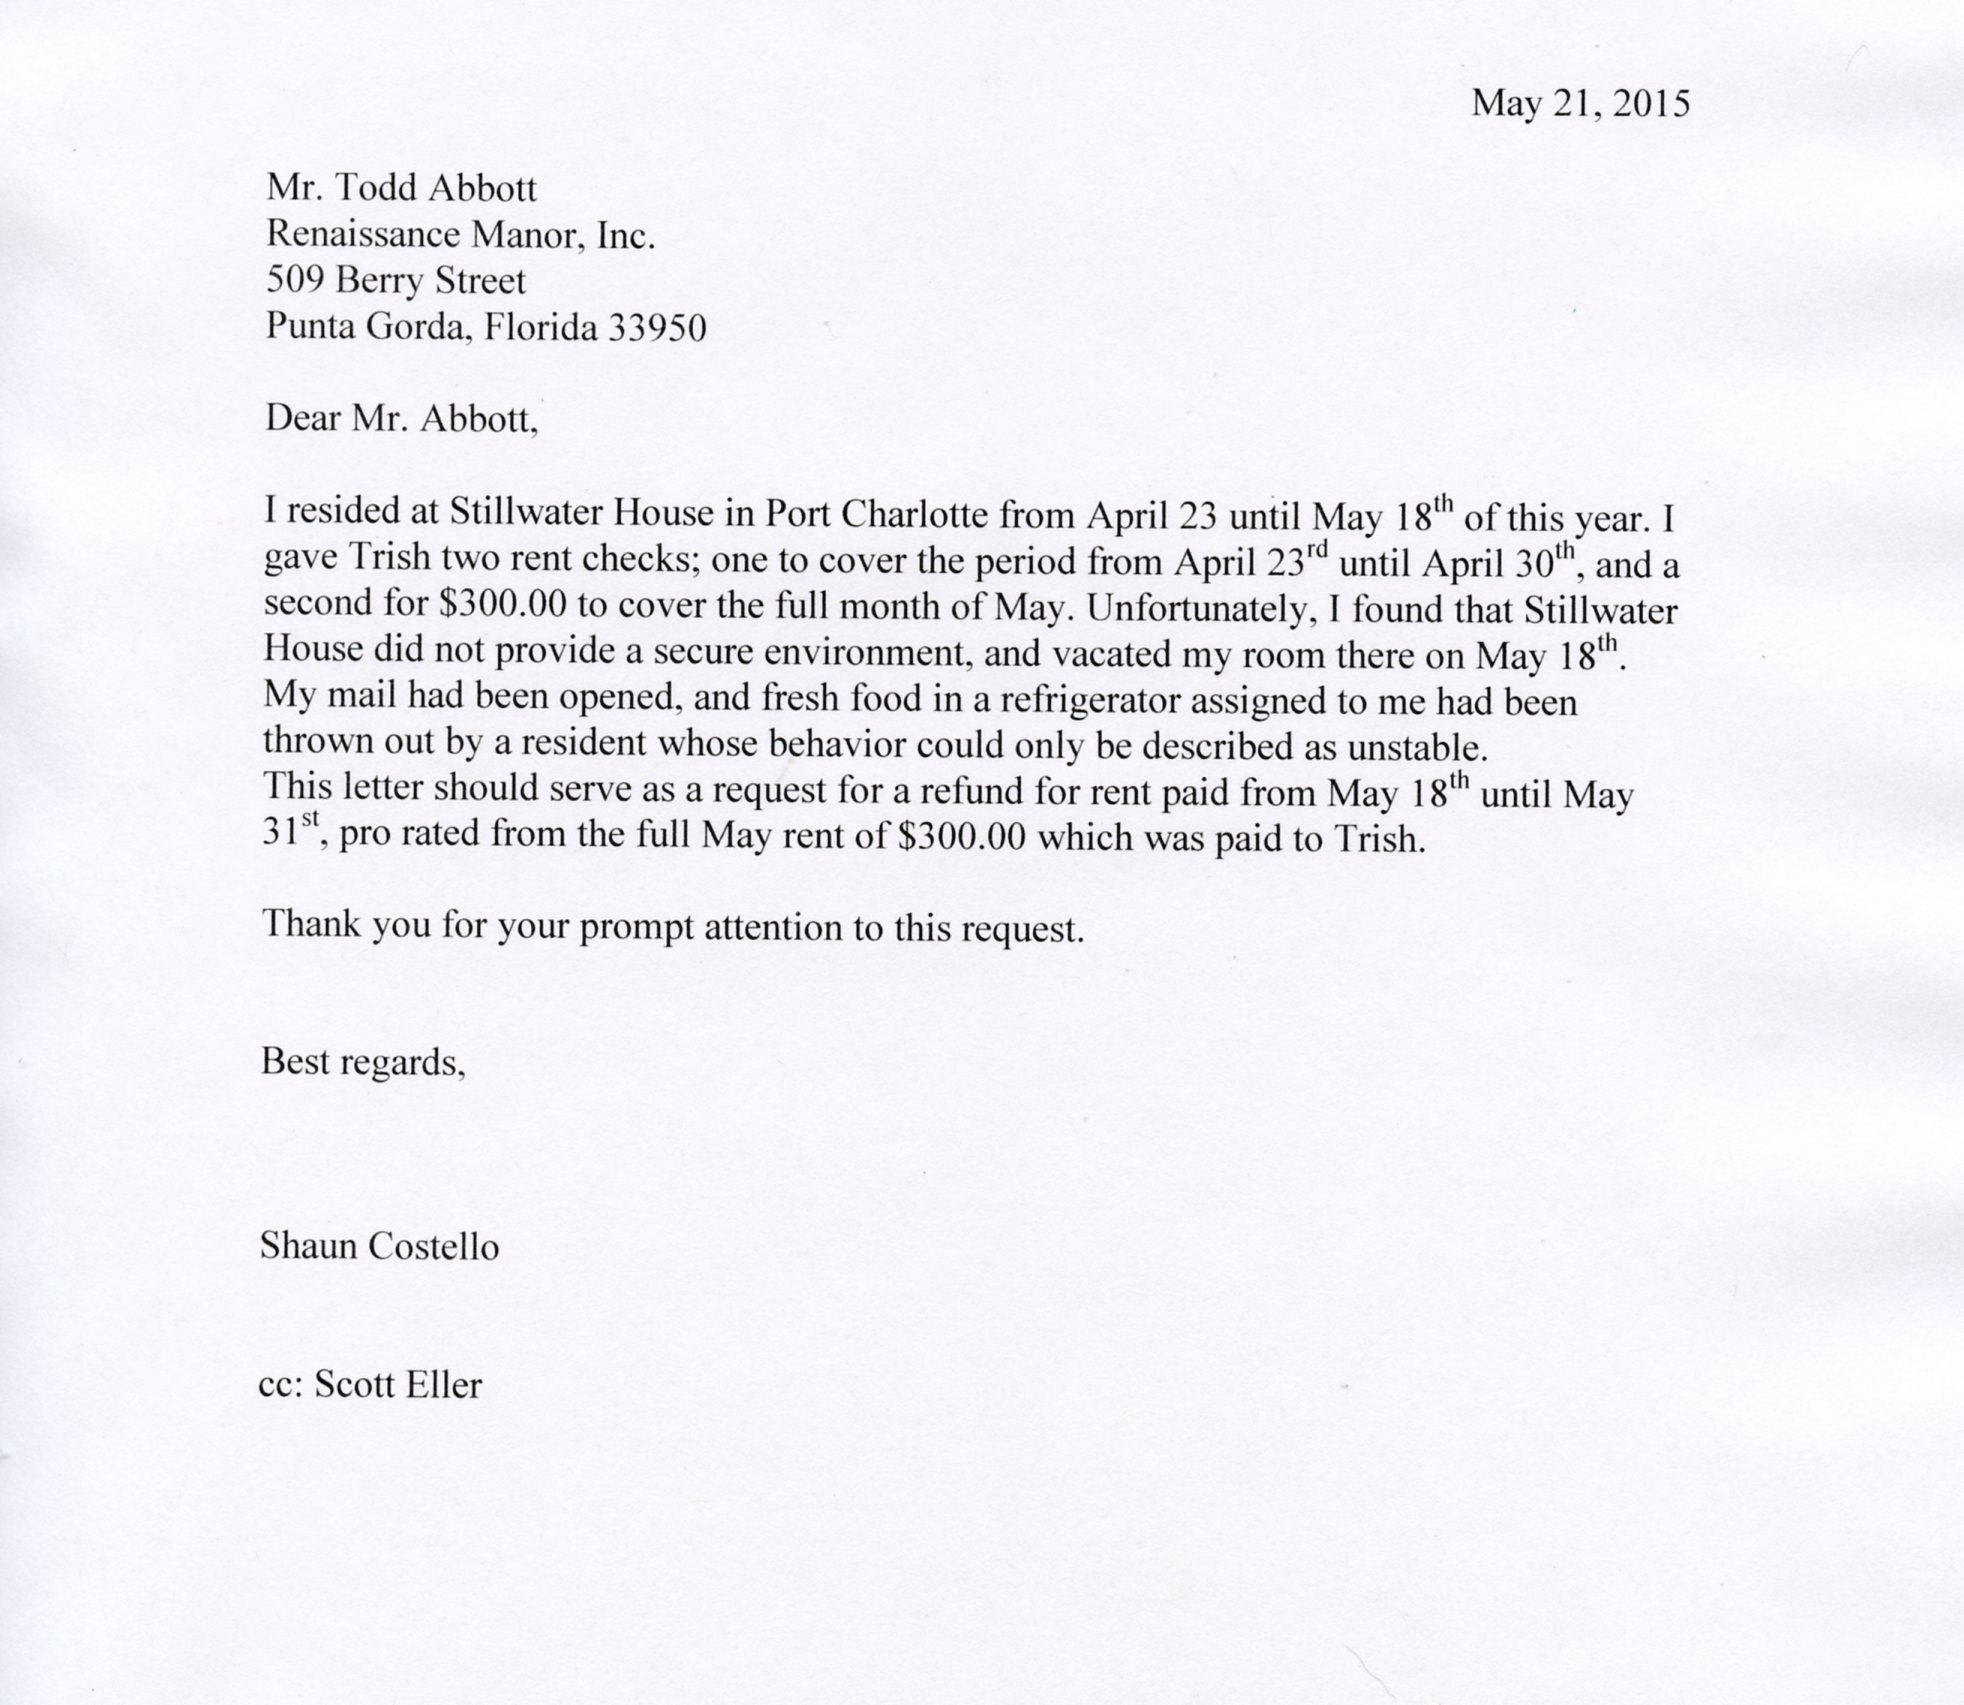 Sample Letter To Local Congressman